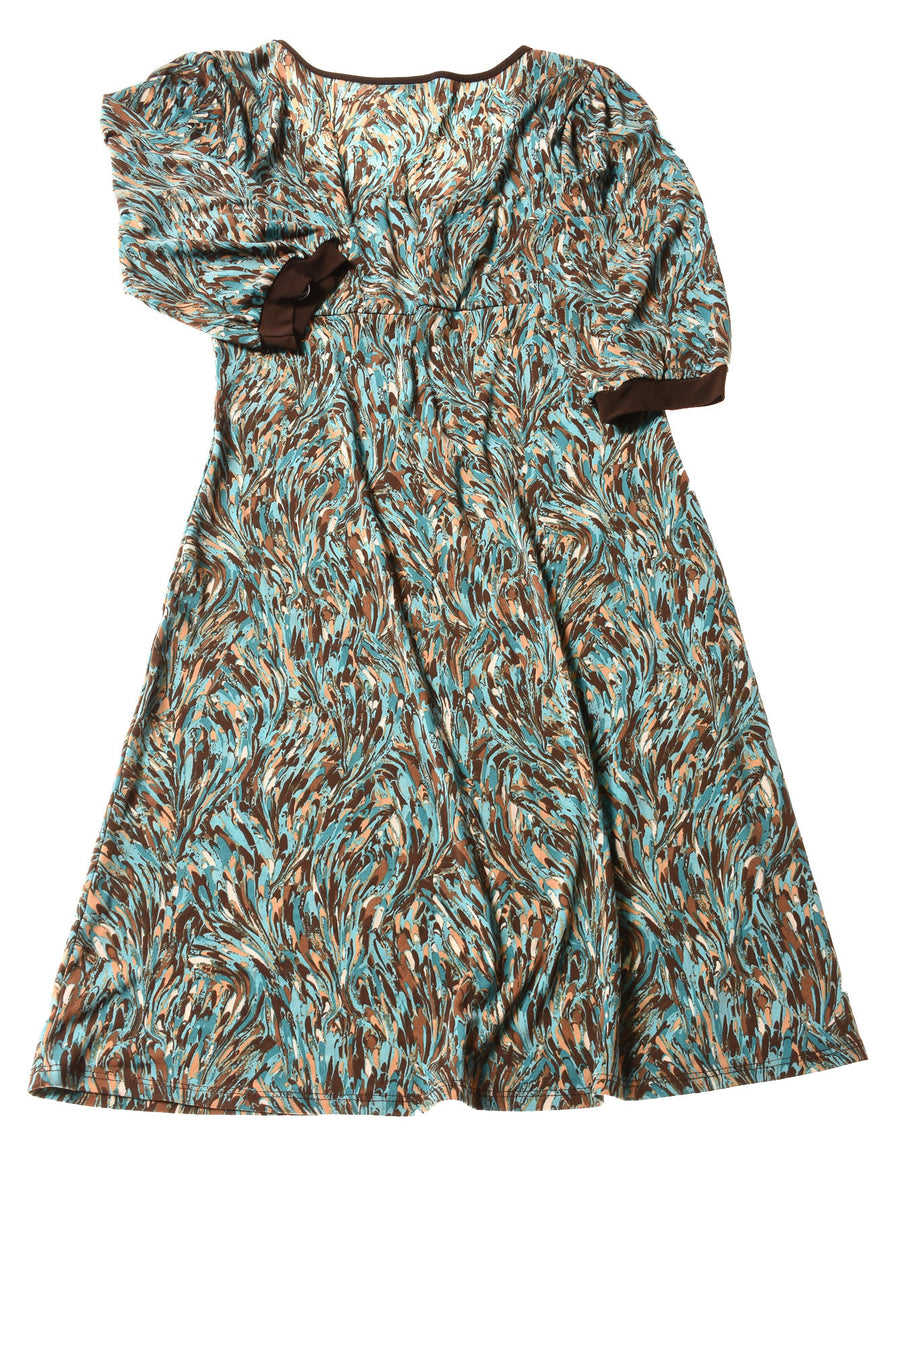 NEW Blue Heaven Women's Dress Large Brown & Blue